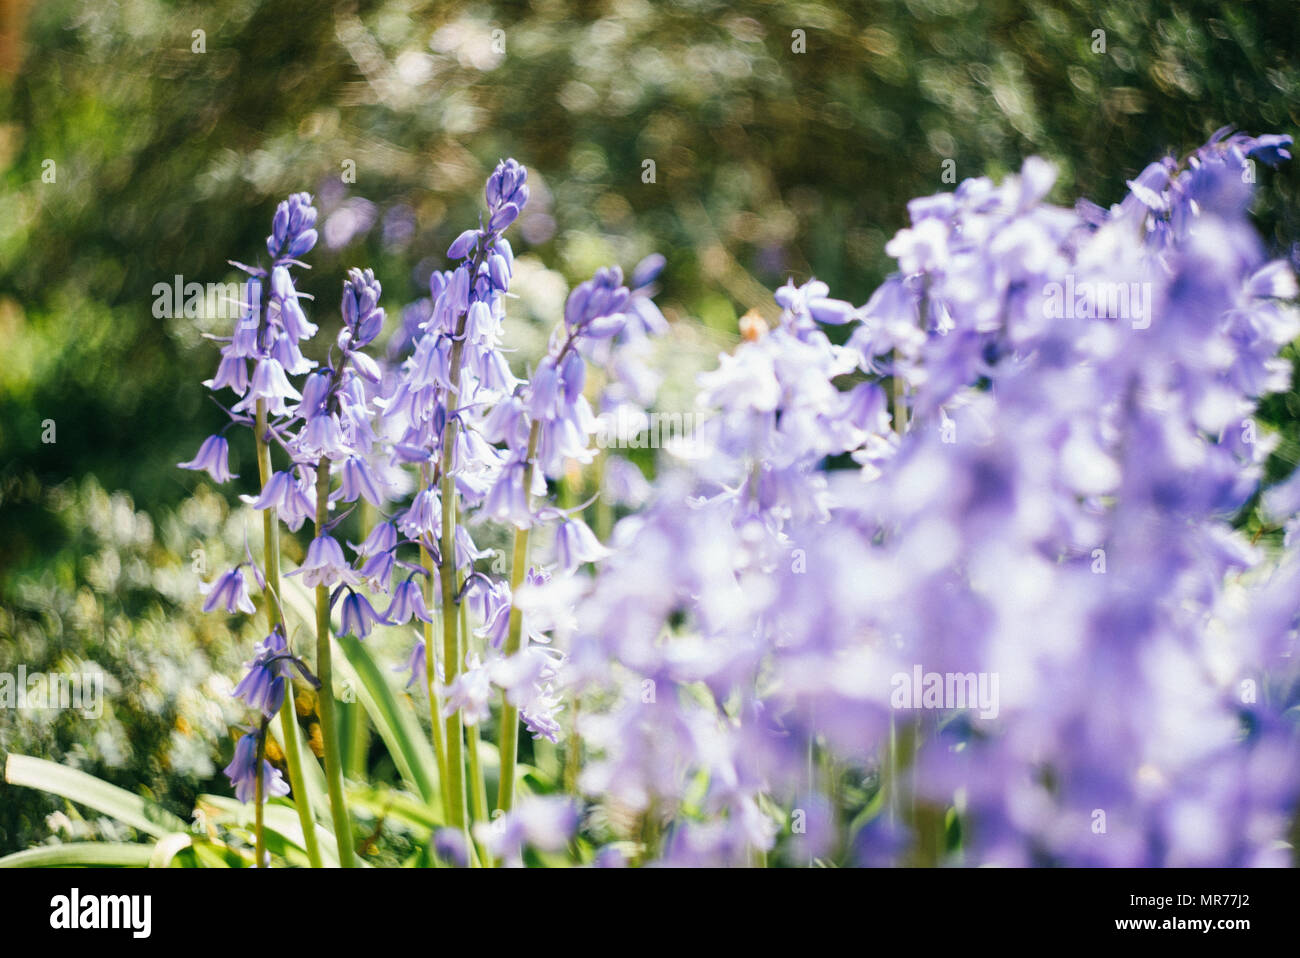 Bluebells at the turn of spring in Hampstead Heath - Stock Image